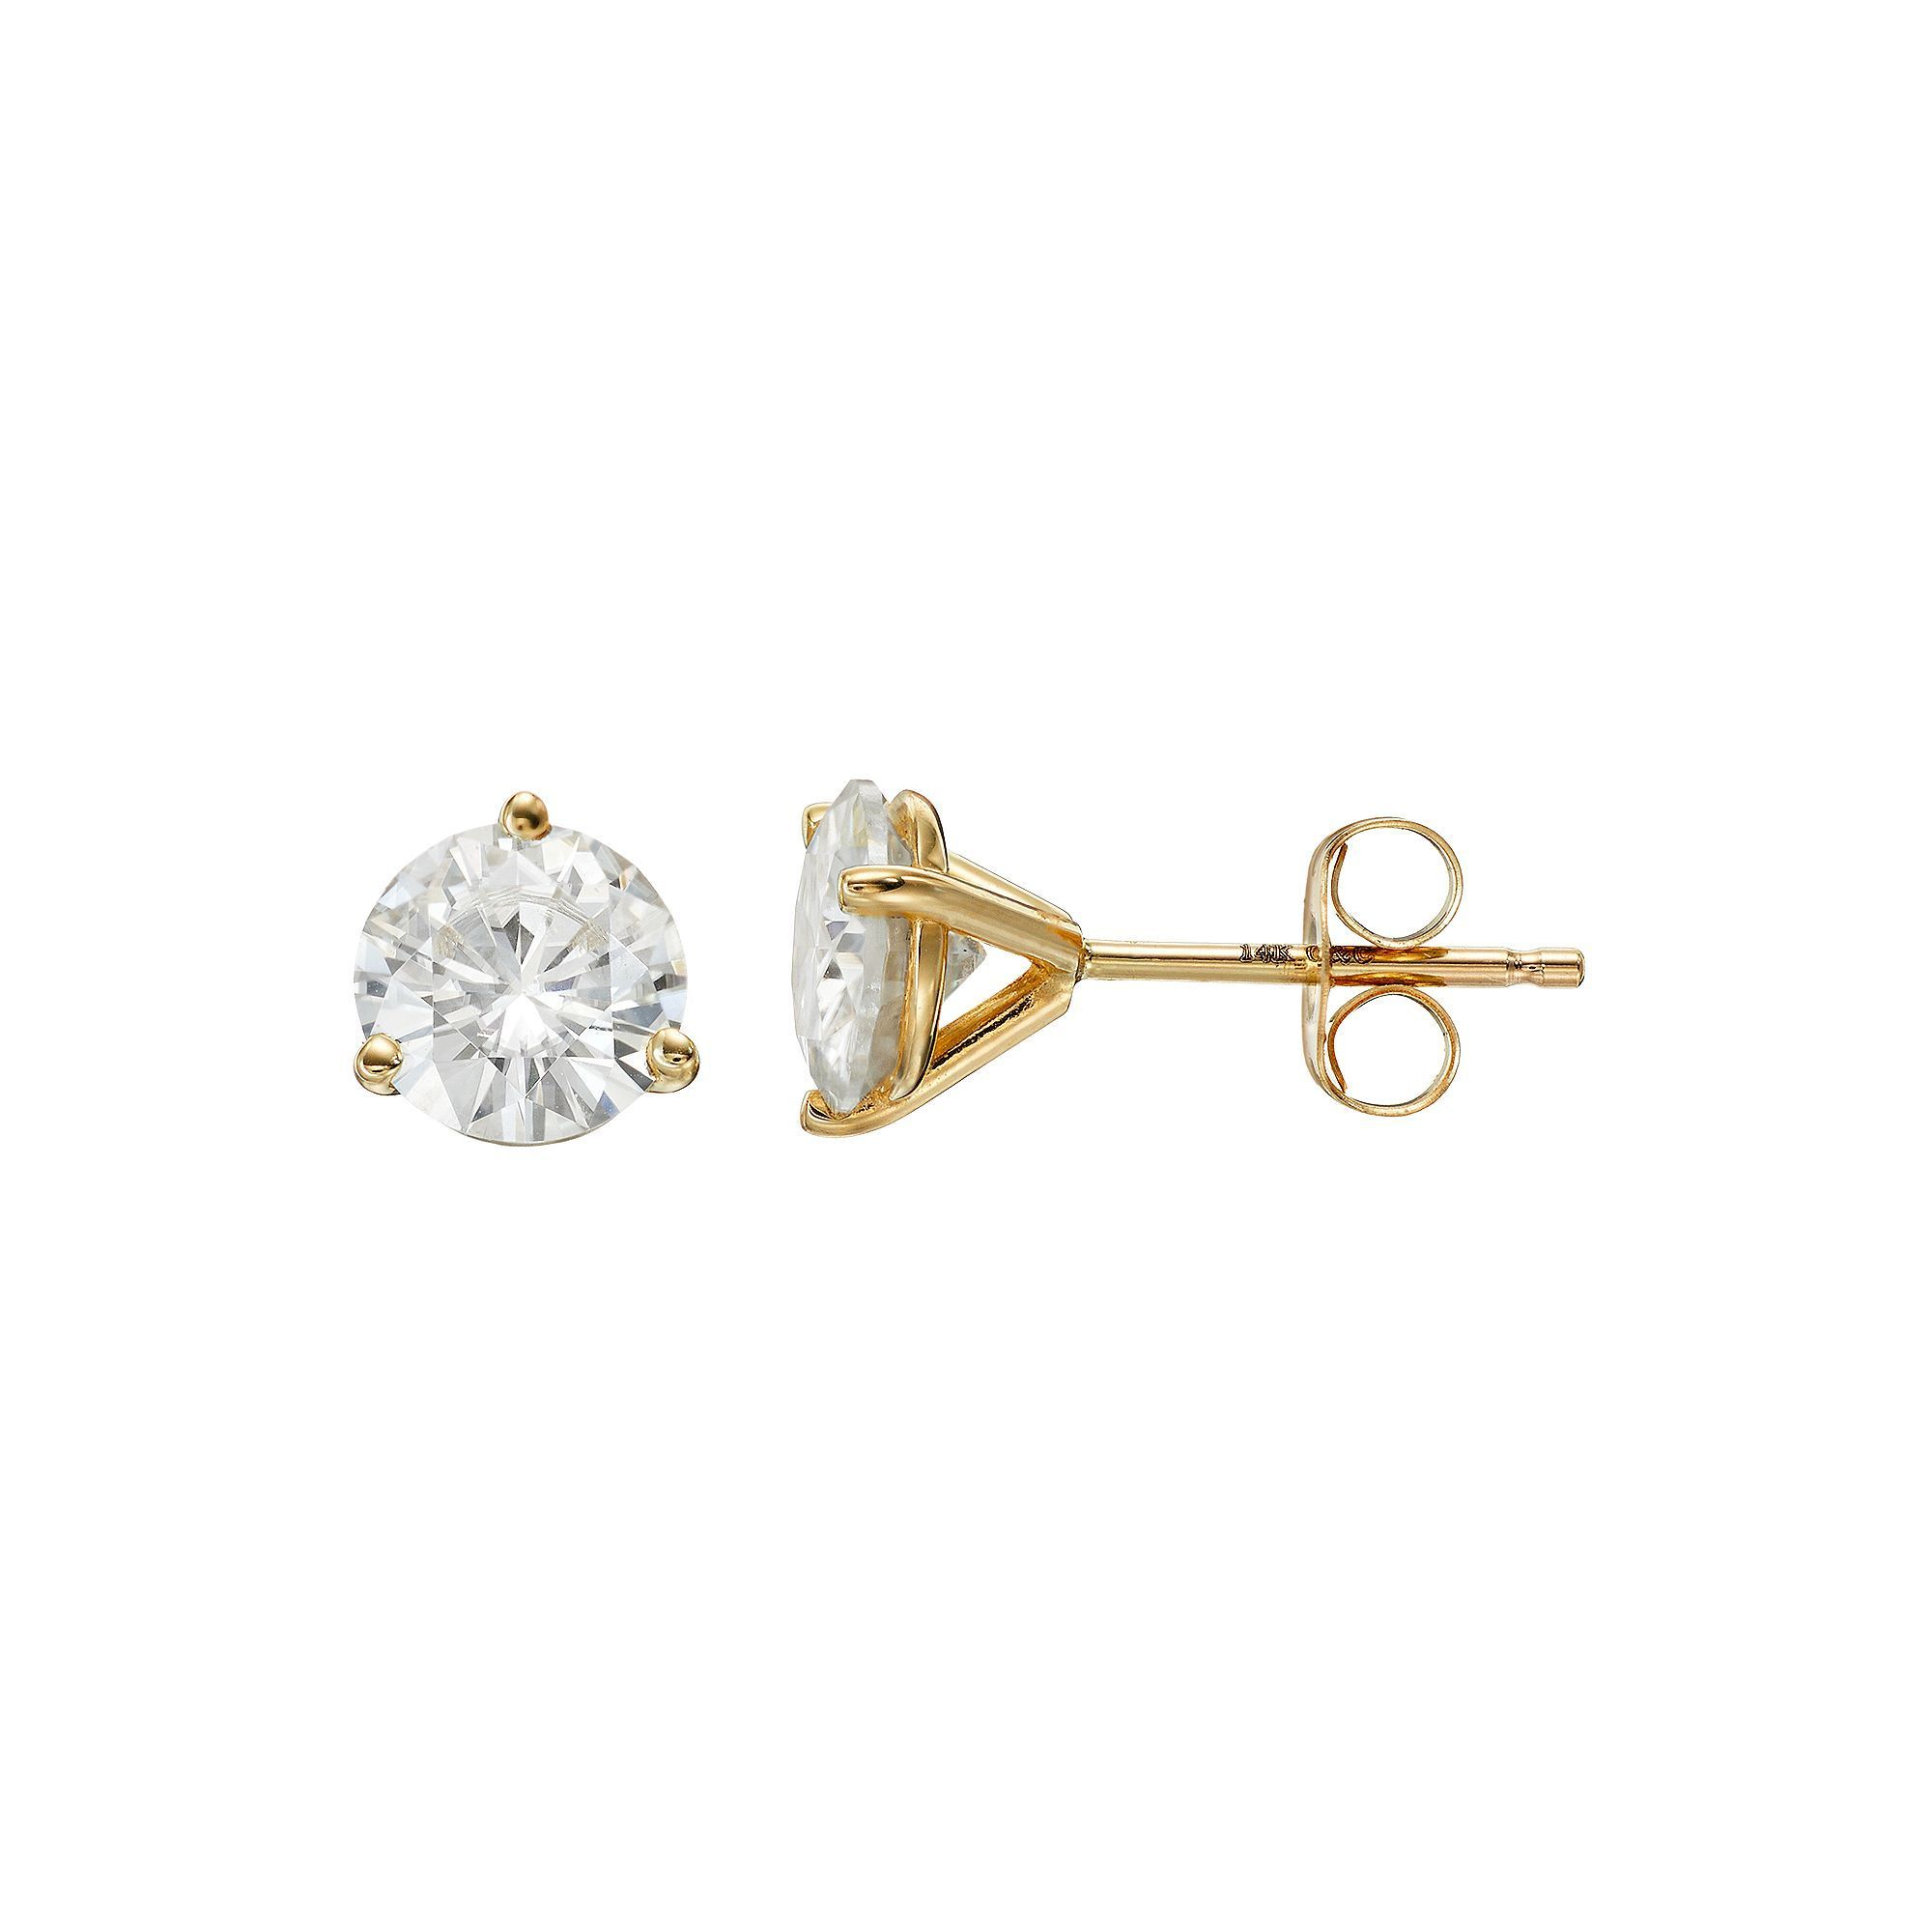 solitaire produk carat brilliant forever earring local gold earrings moissanite setting jakarta white